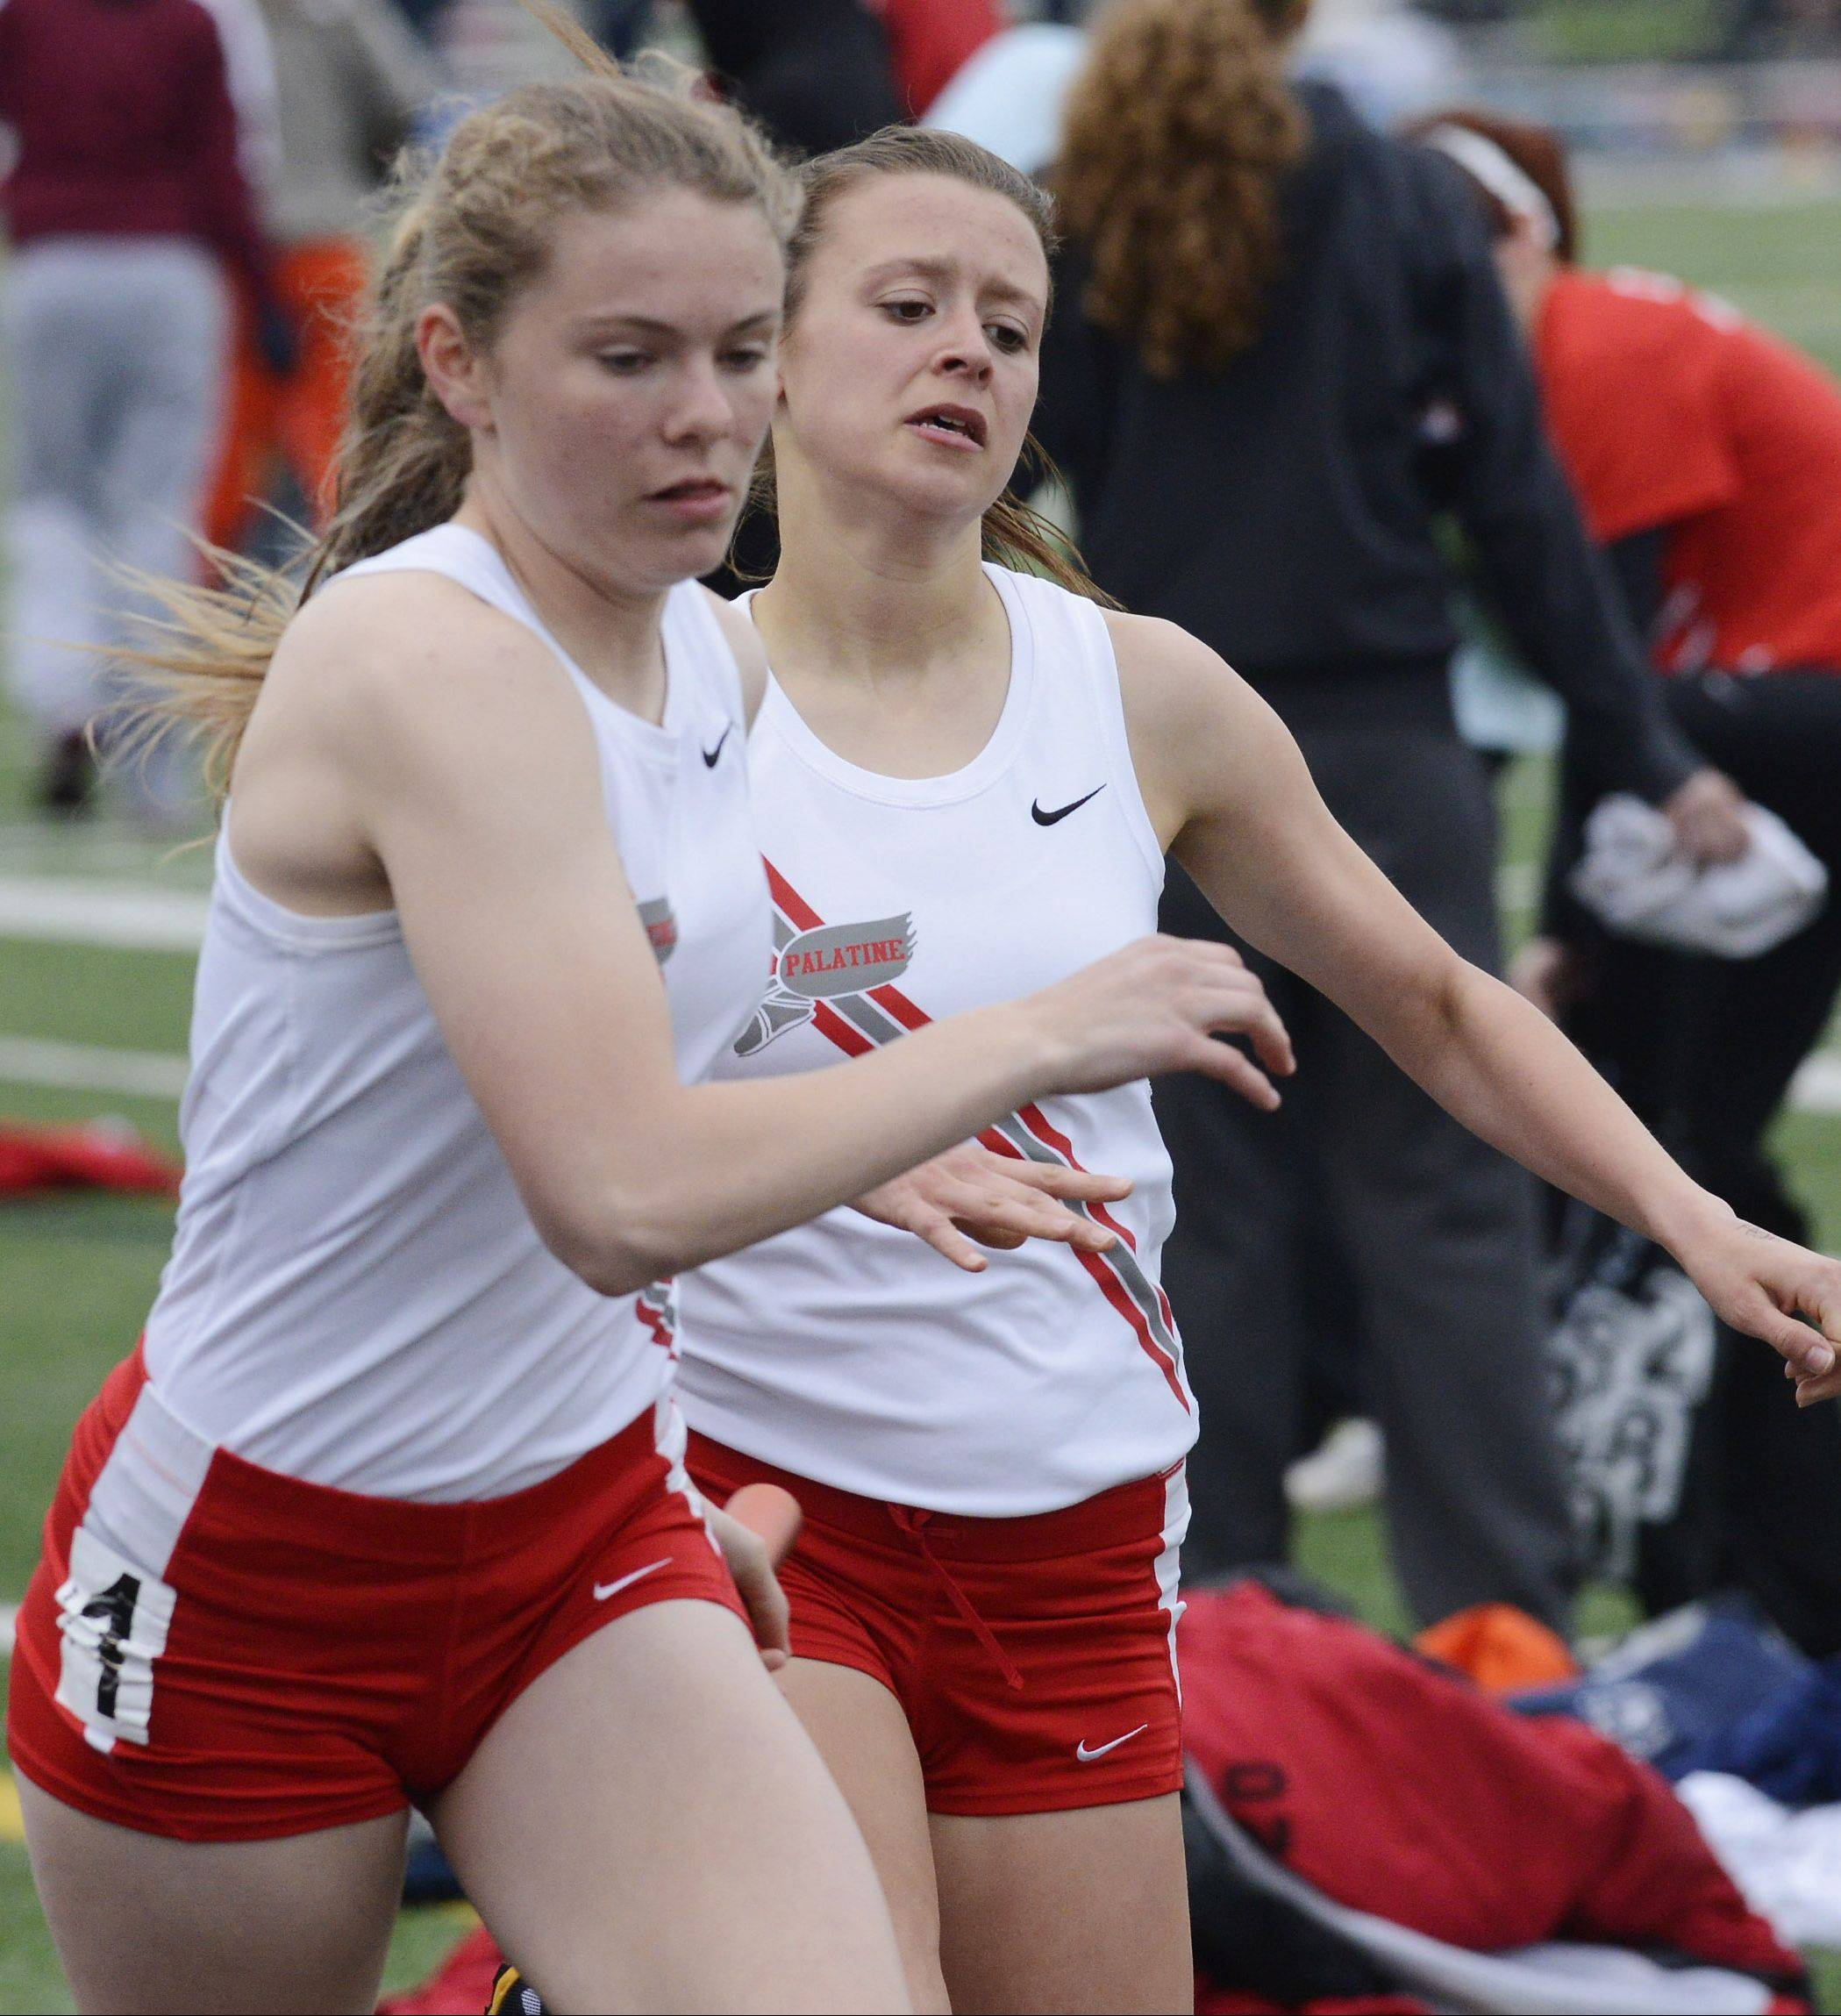 Palatine�s Kara Burton, left, takes the baton from teammate Tess Wasowicz for the anchor leg of the 4 x 800-meter relay during the Mid-Suburban League girls track meet at Schaumburg on Friday.